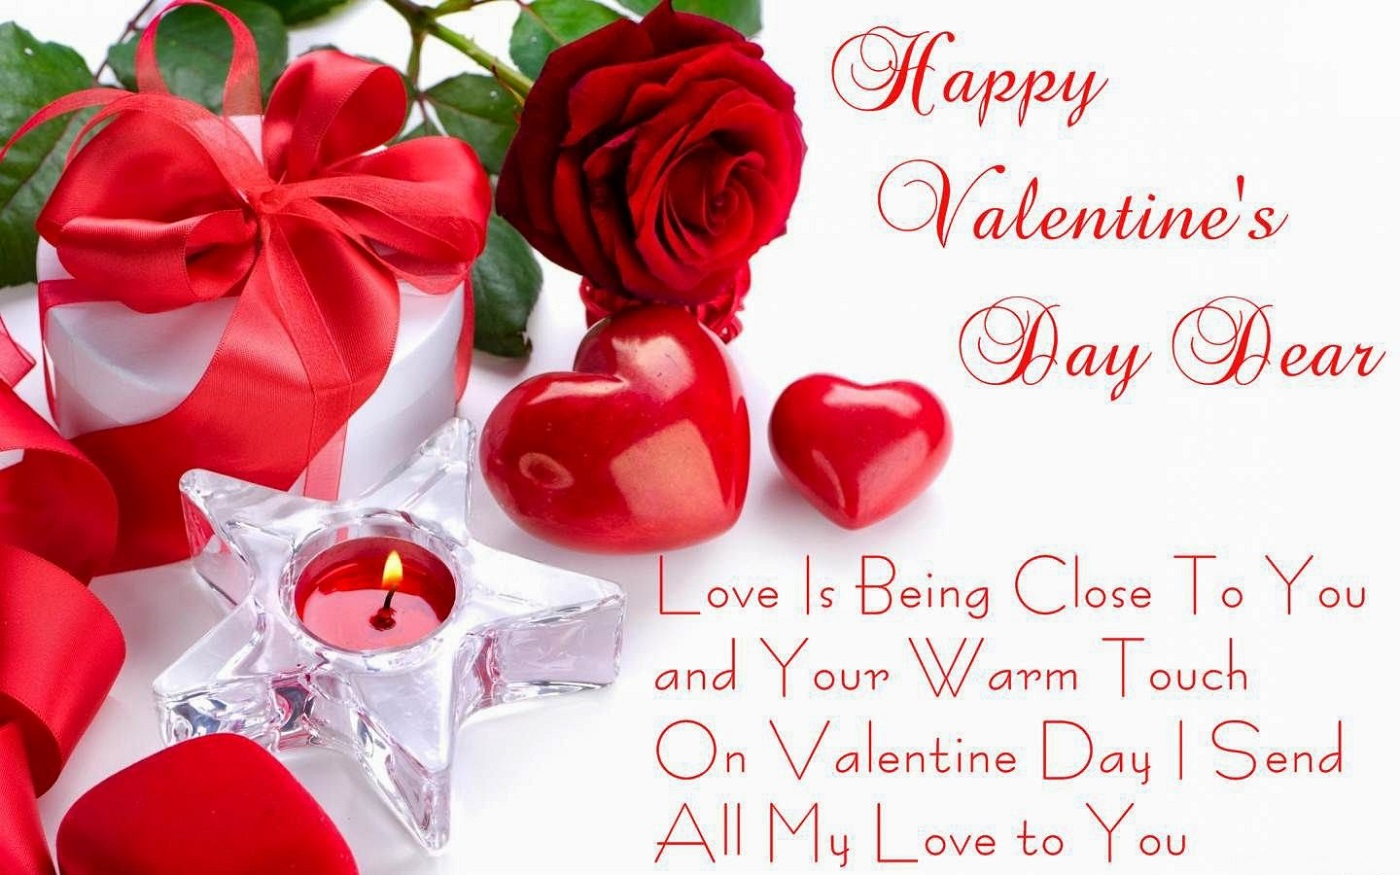 Best Happy Valentines Day Wishes Quotes For Girlfriend With Images